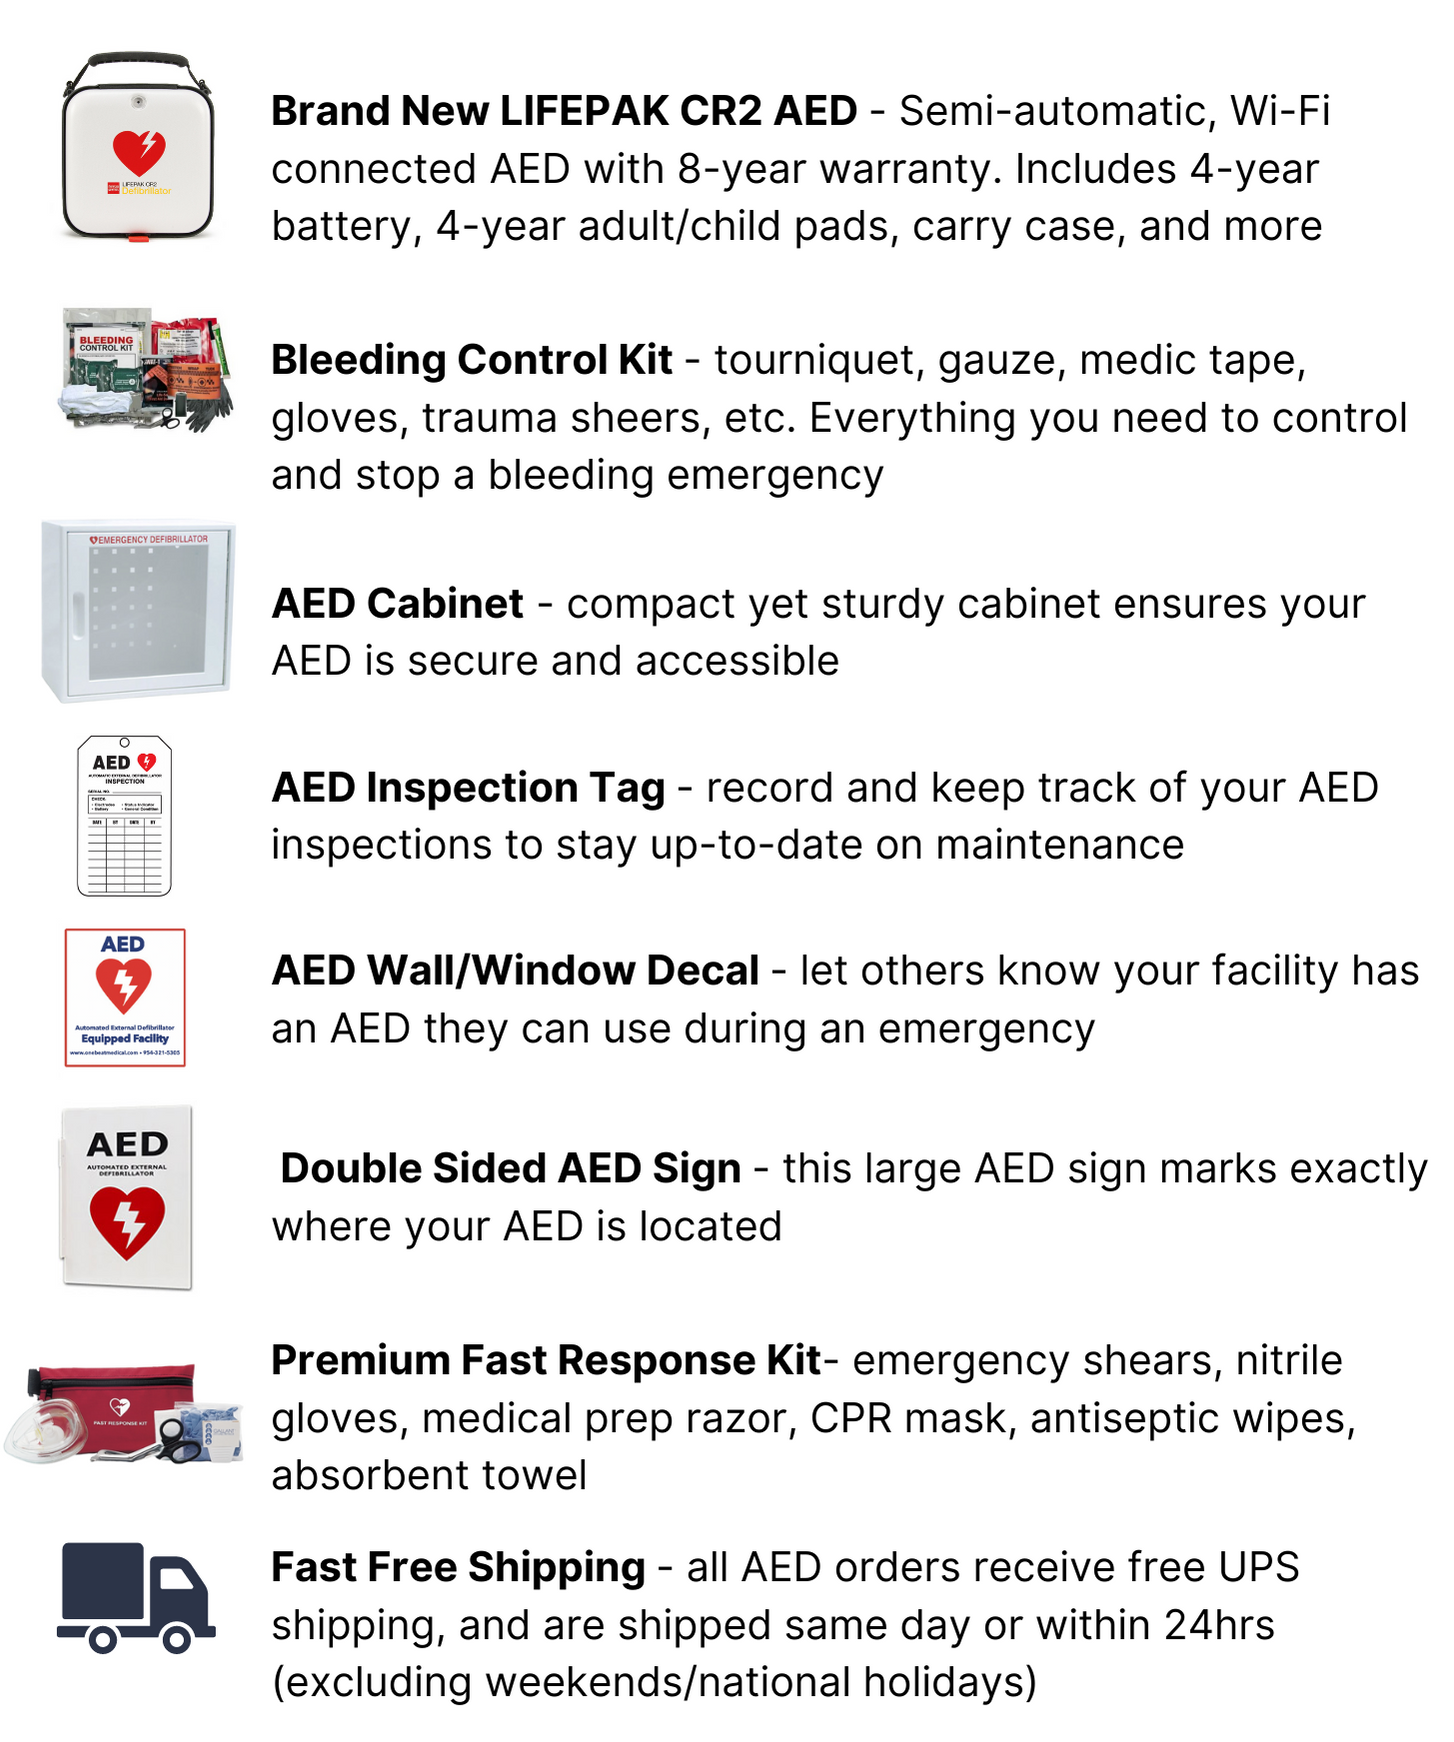 physio-control lifepak cr2 aed package